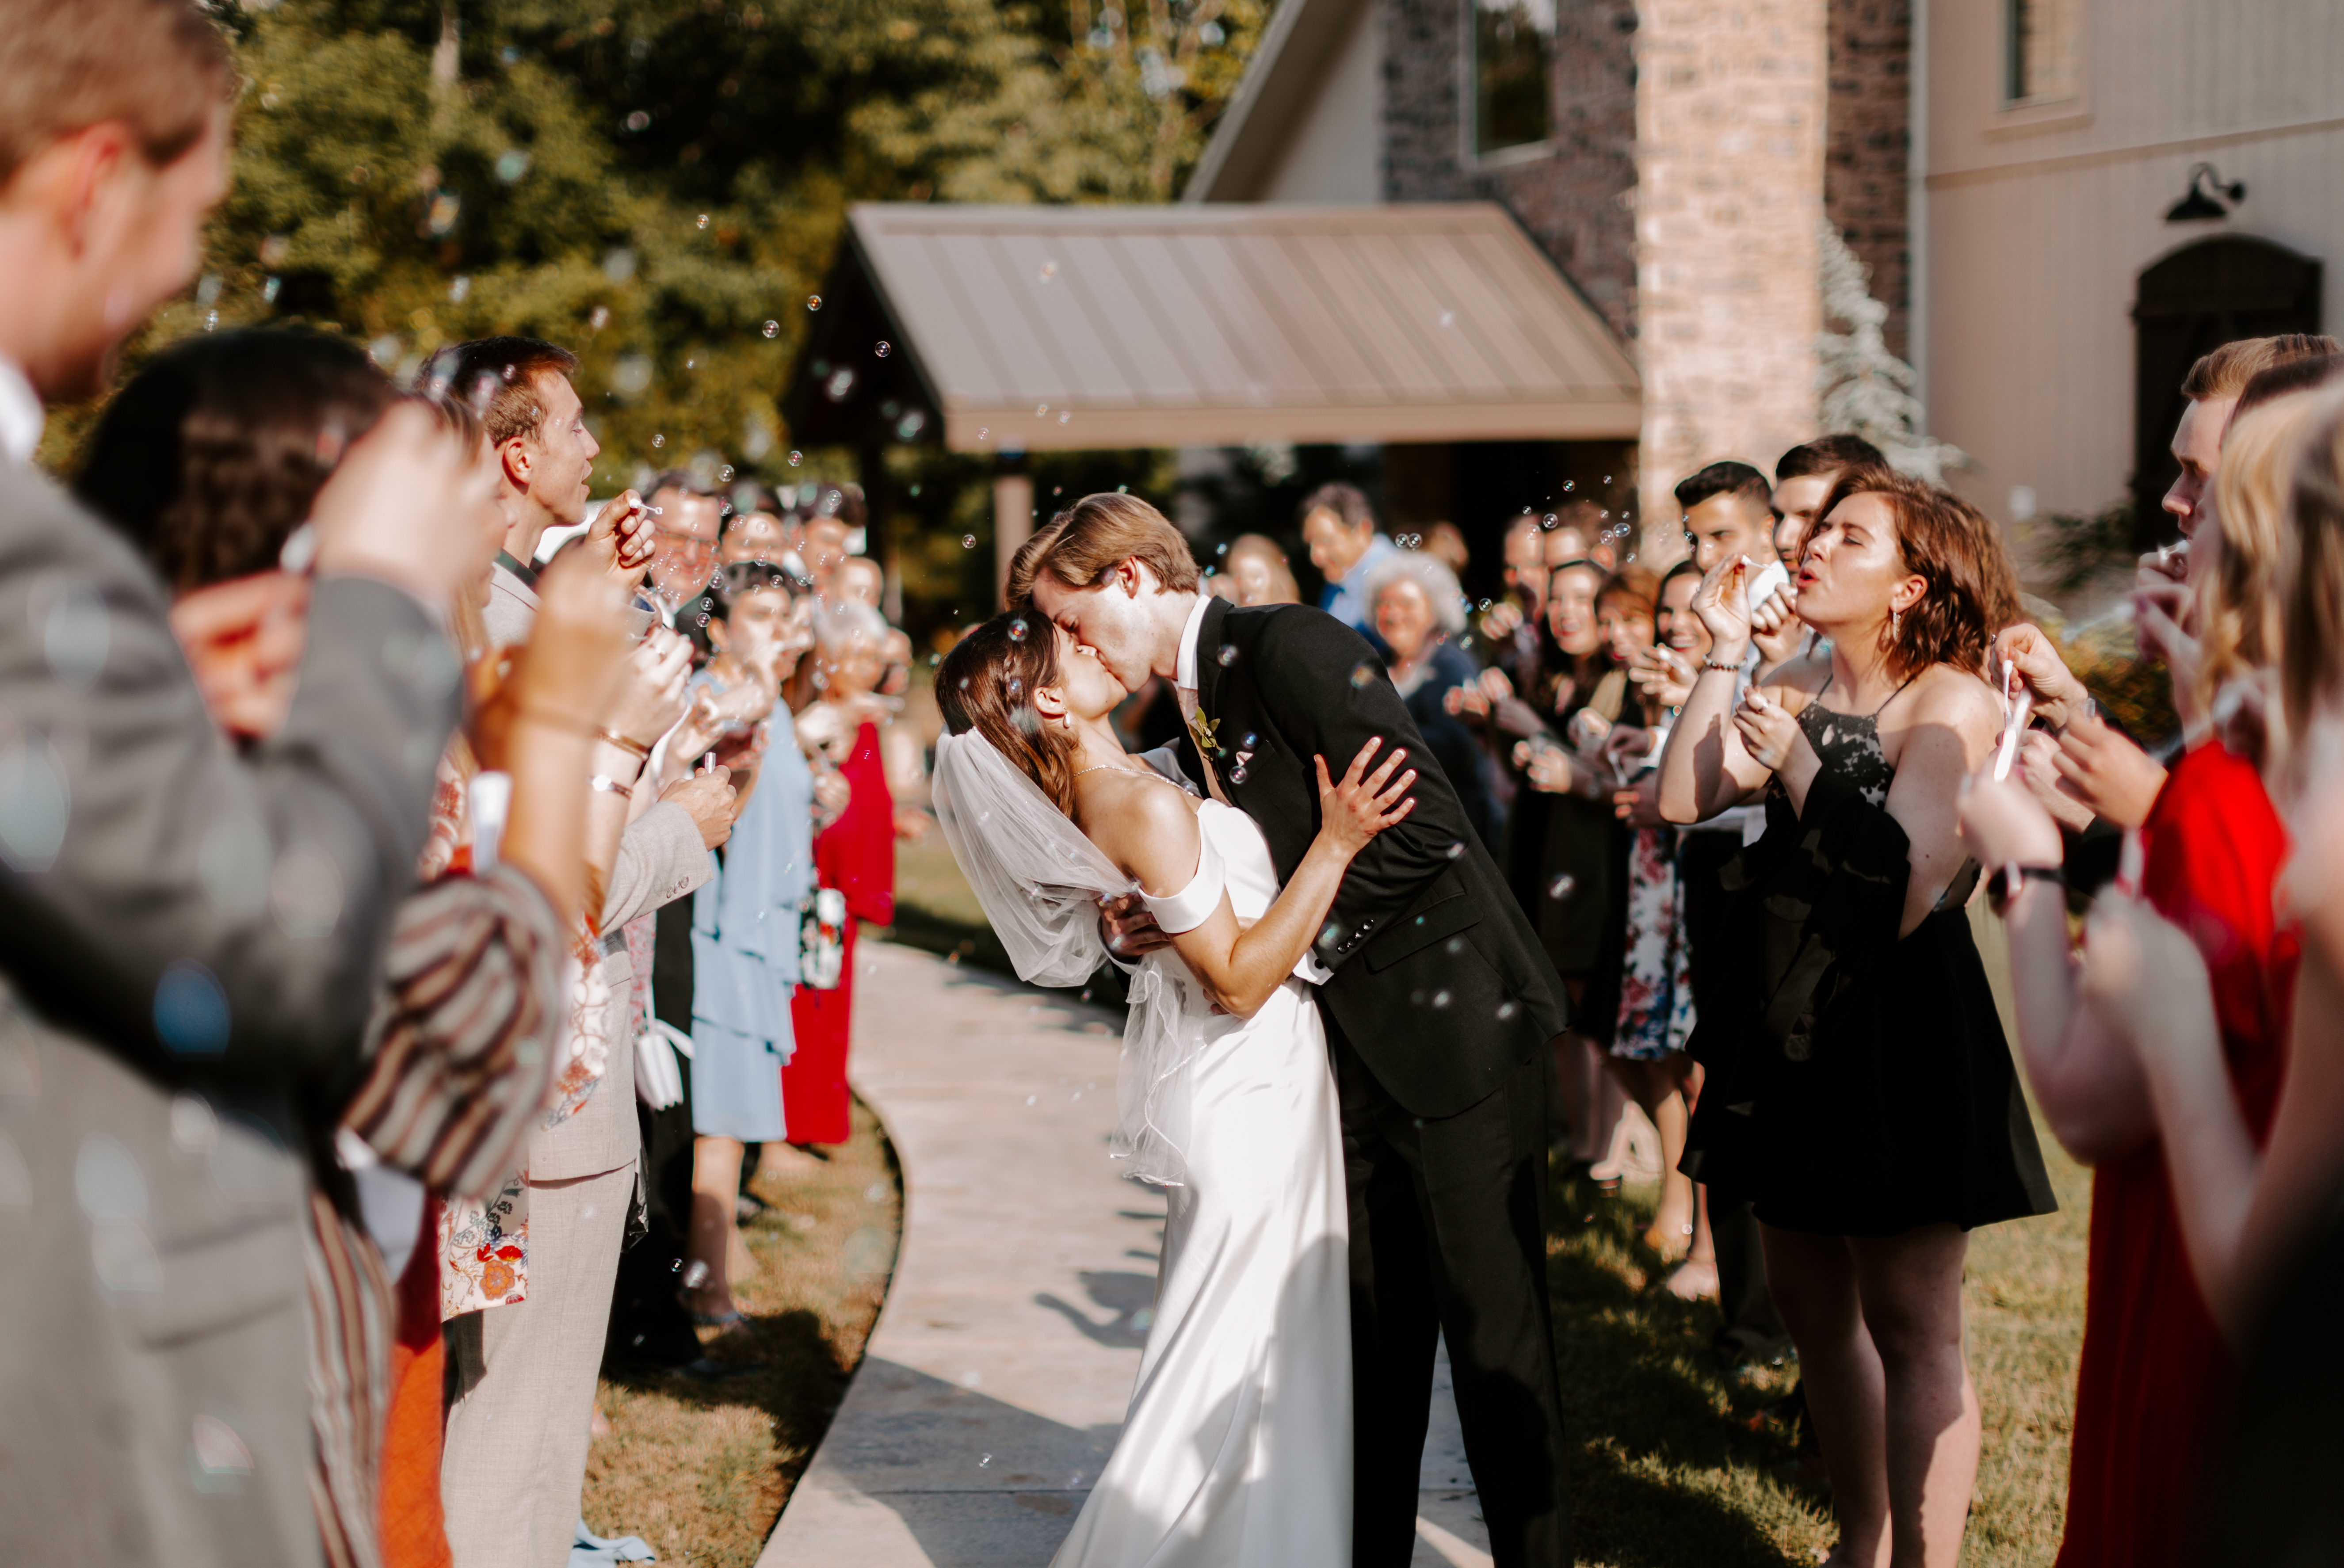 Bride and groom bubble exit after wedding